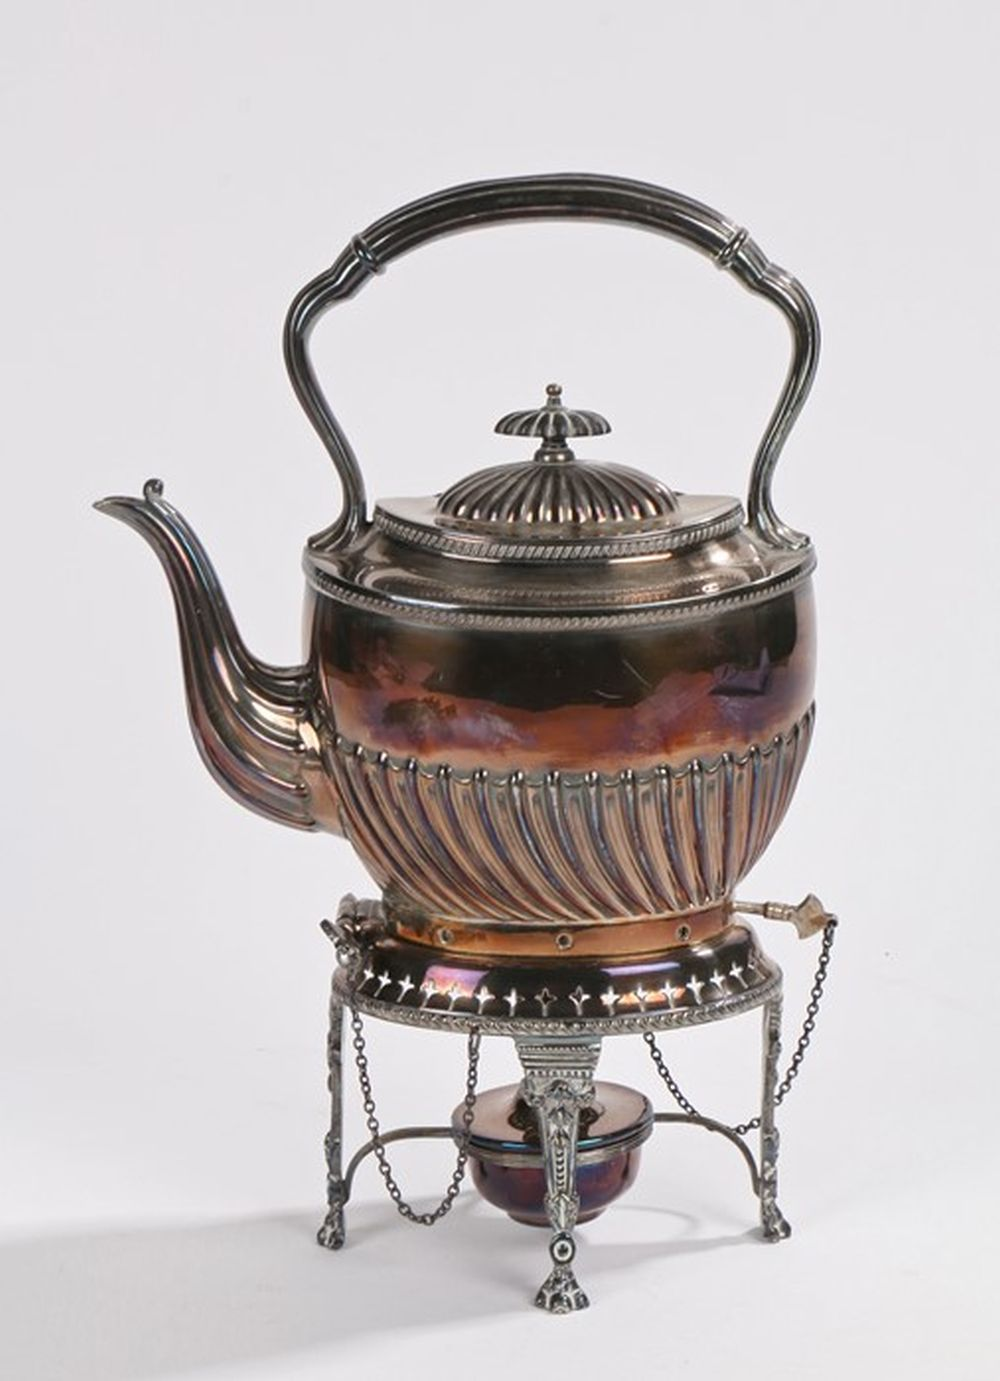 Plated tea kettle, stand and burner, with reeded handle, gadrooned hinged cover and body, on a pierc